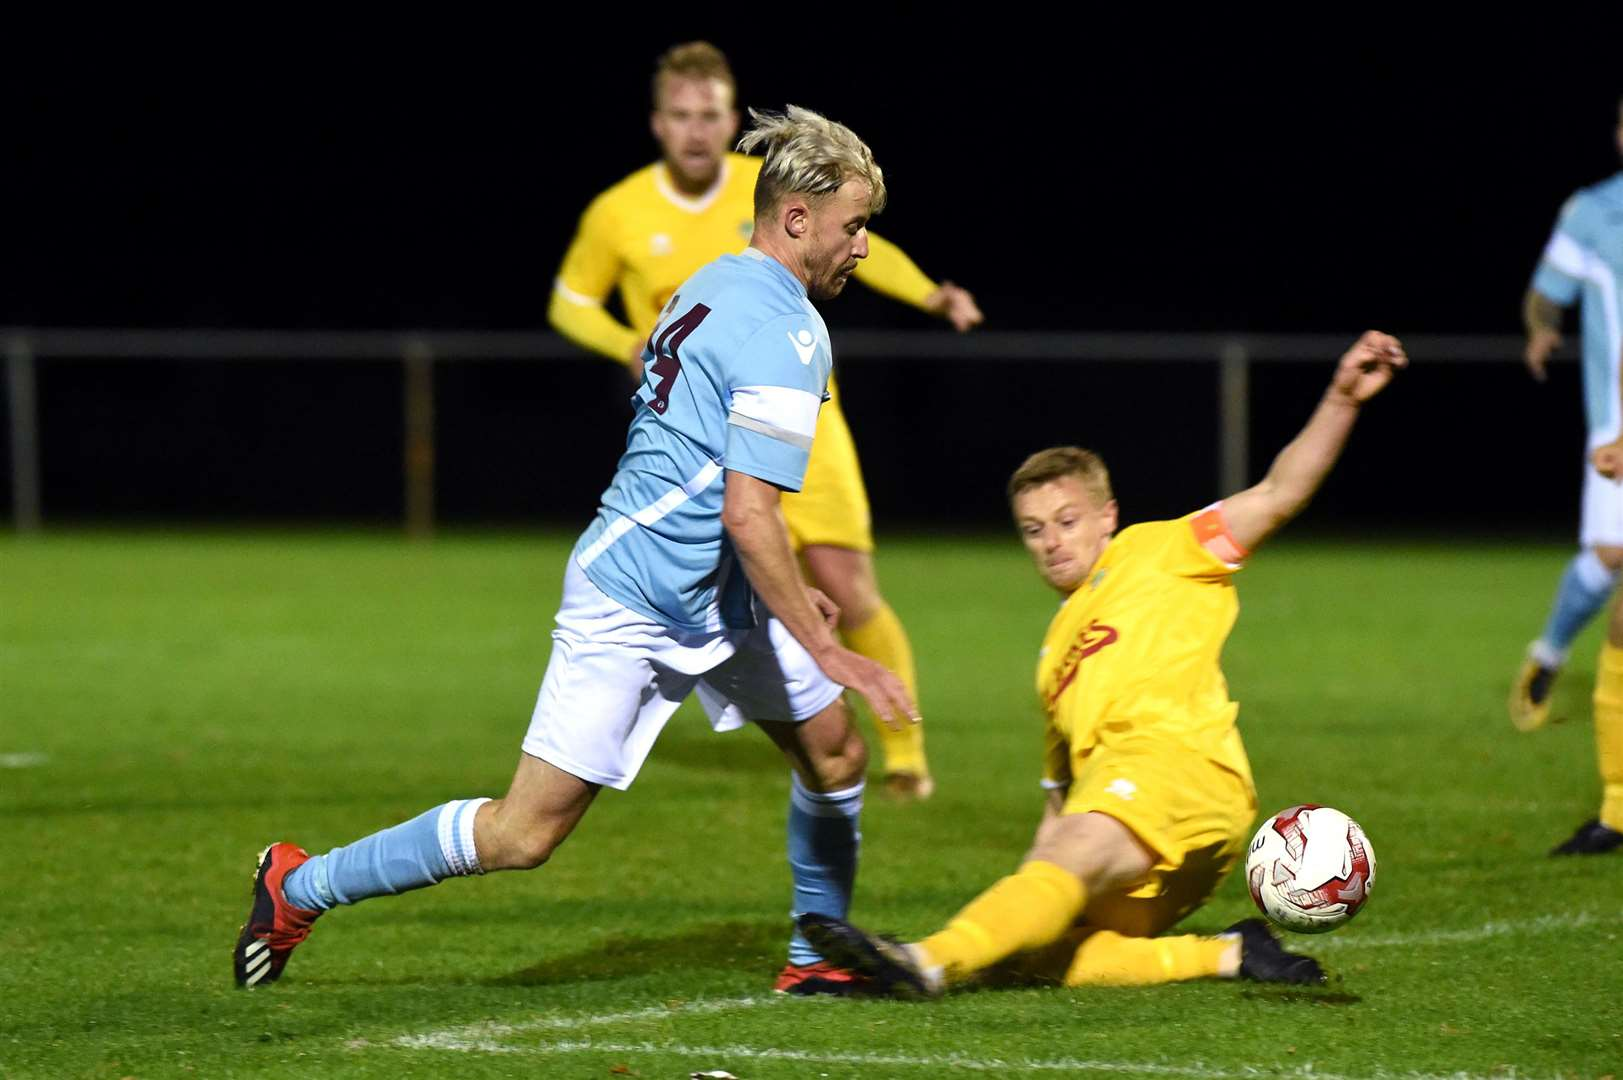 FOOTBALL - Walsham Le Willows v Thetford Town..Pictured: Liam Hemming (T) is bought down in the box by Sam Peters (W) and a penalty is awarded...PICTURE: Mecha Morton .... (19344332)